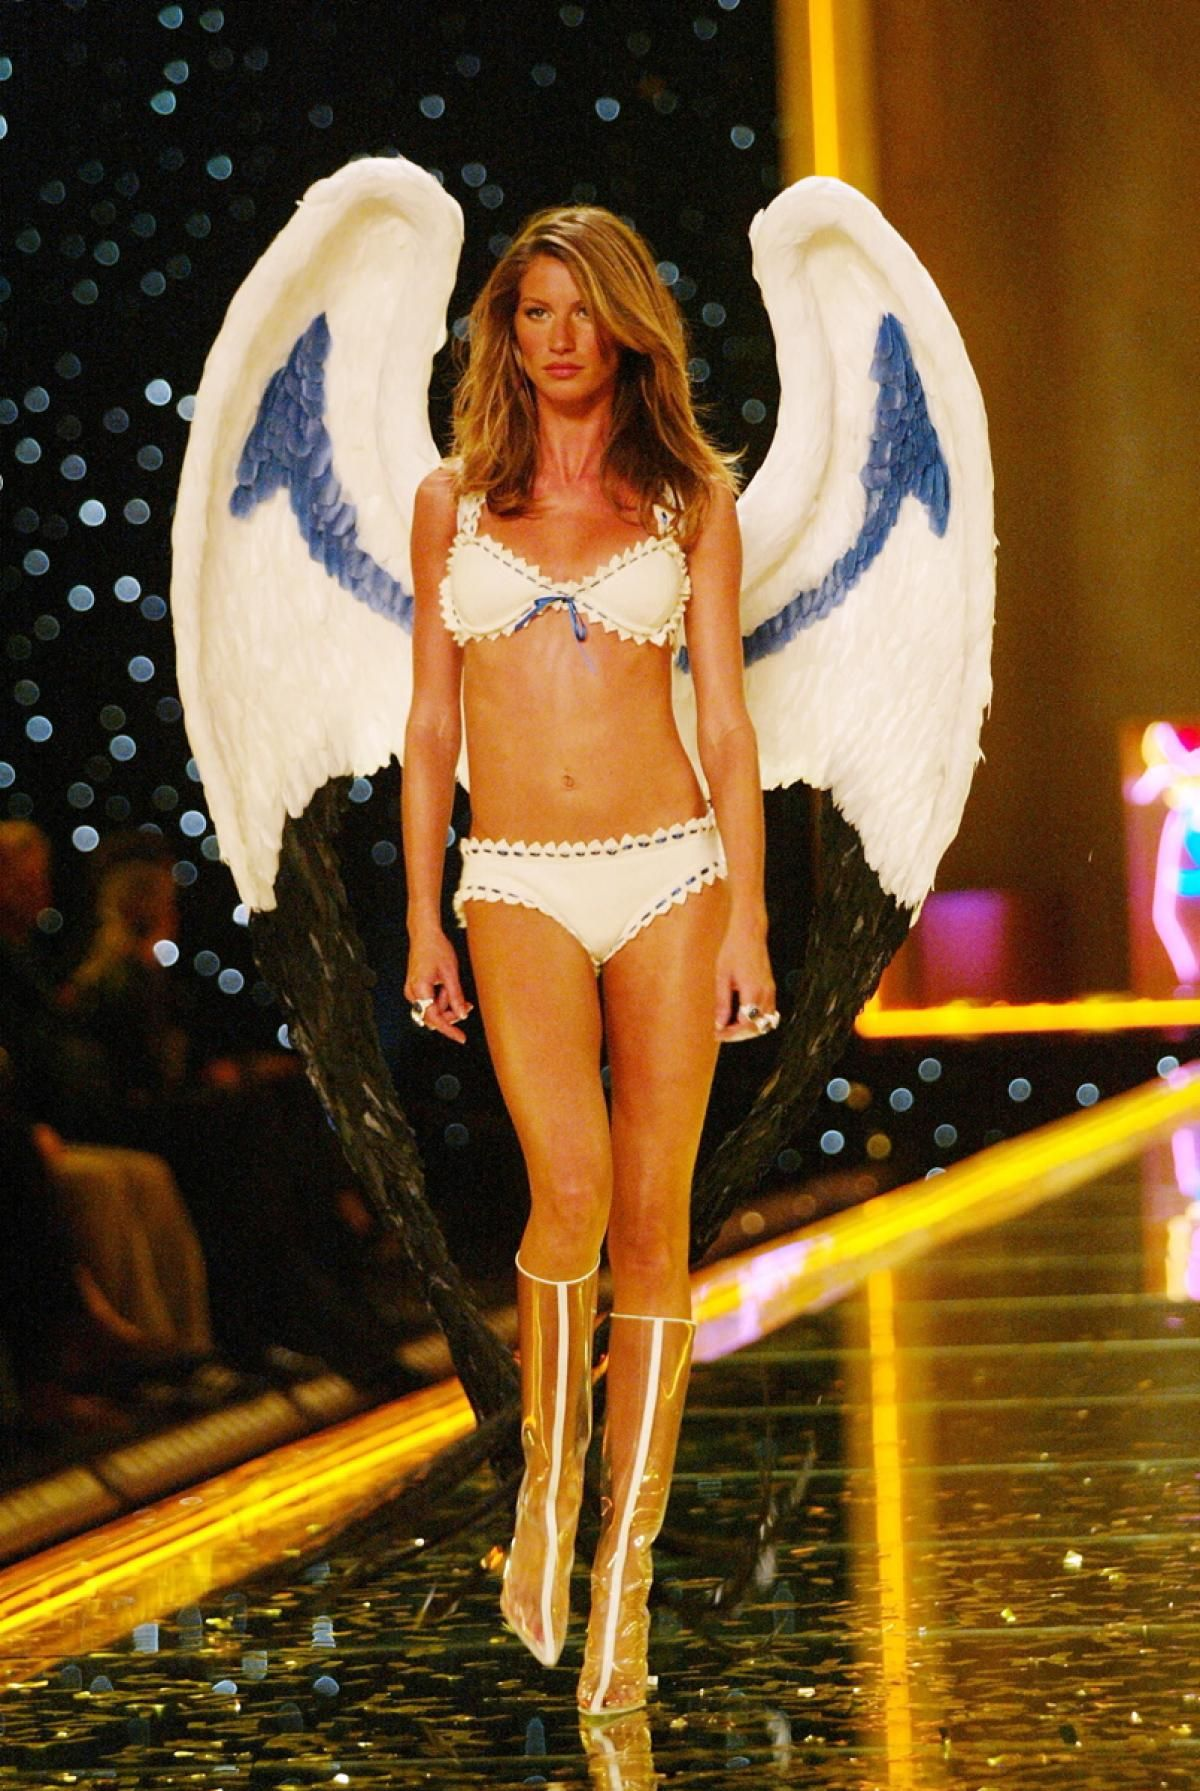 Victoria's Secret Fashion Show - Wikipedia